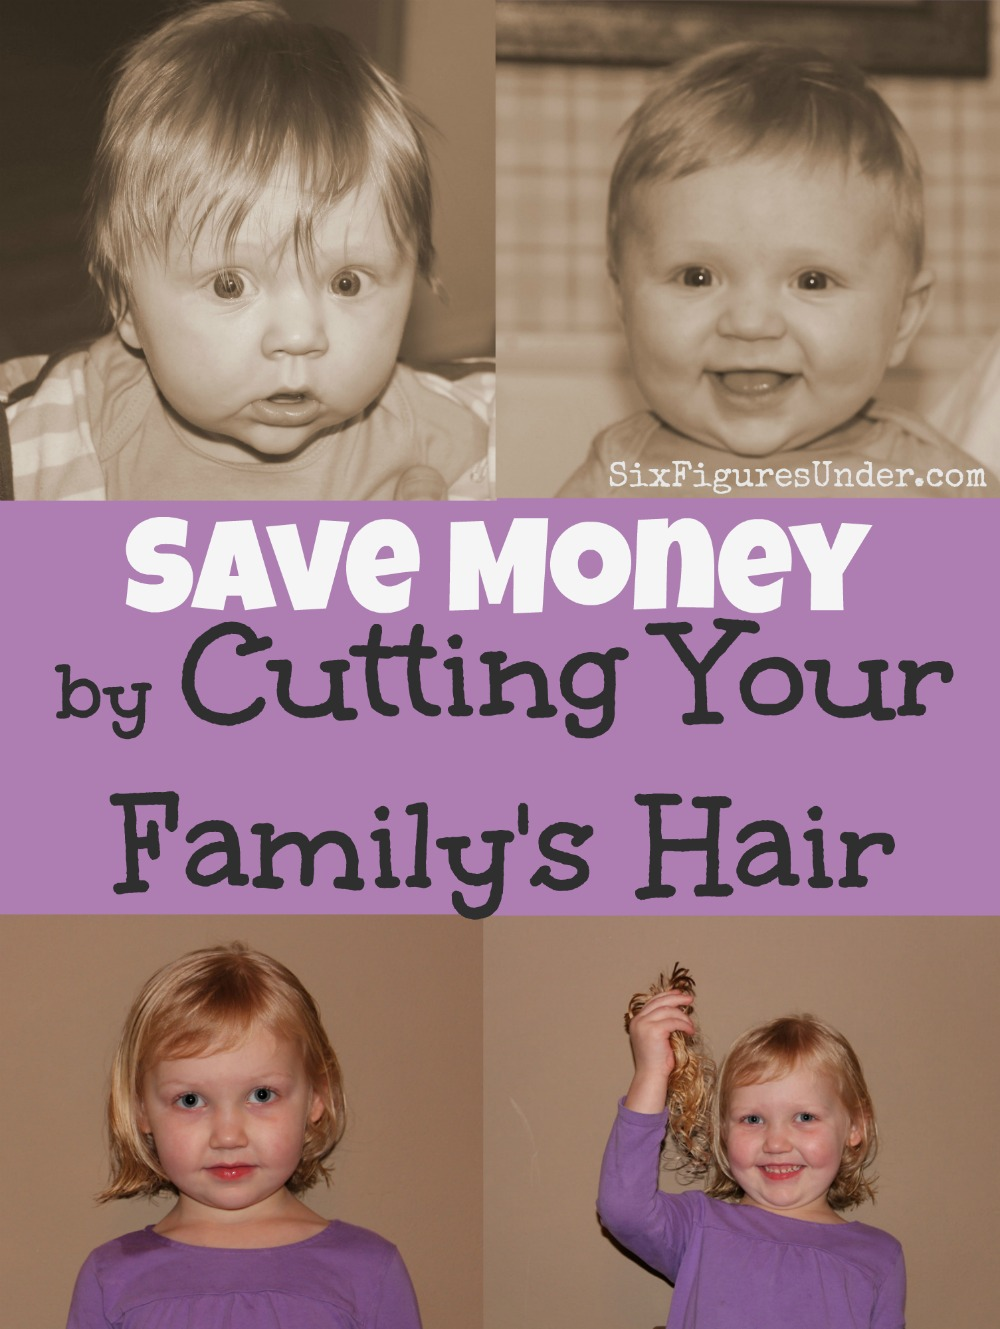 The investment for cutting your family's hair is minimal considering how much you can save. If you're new to cutting your own hair, be brave and give it a try.